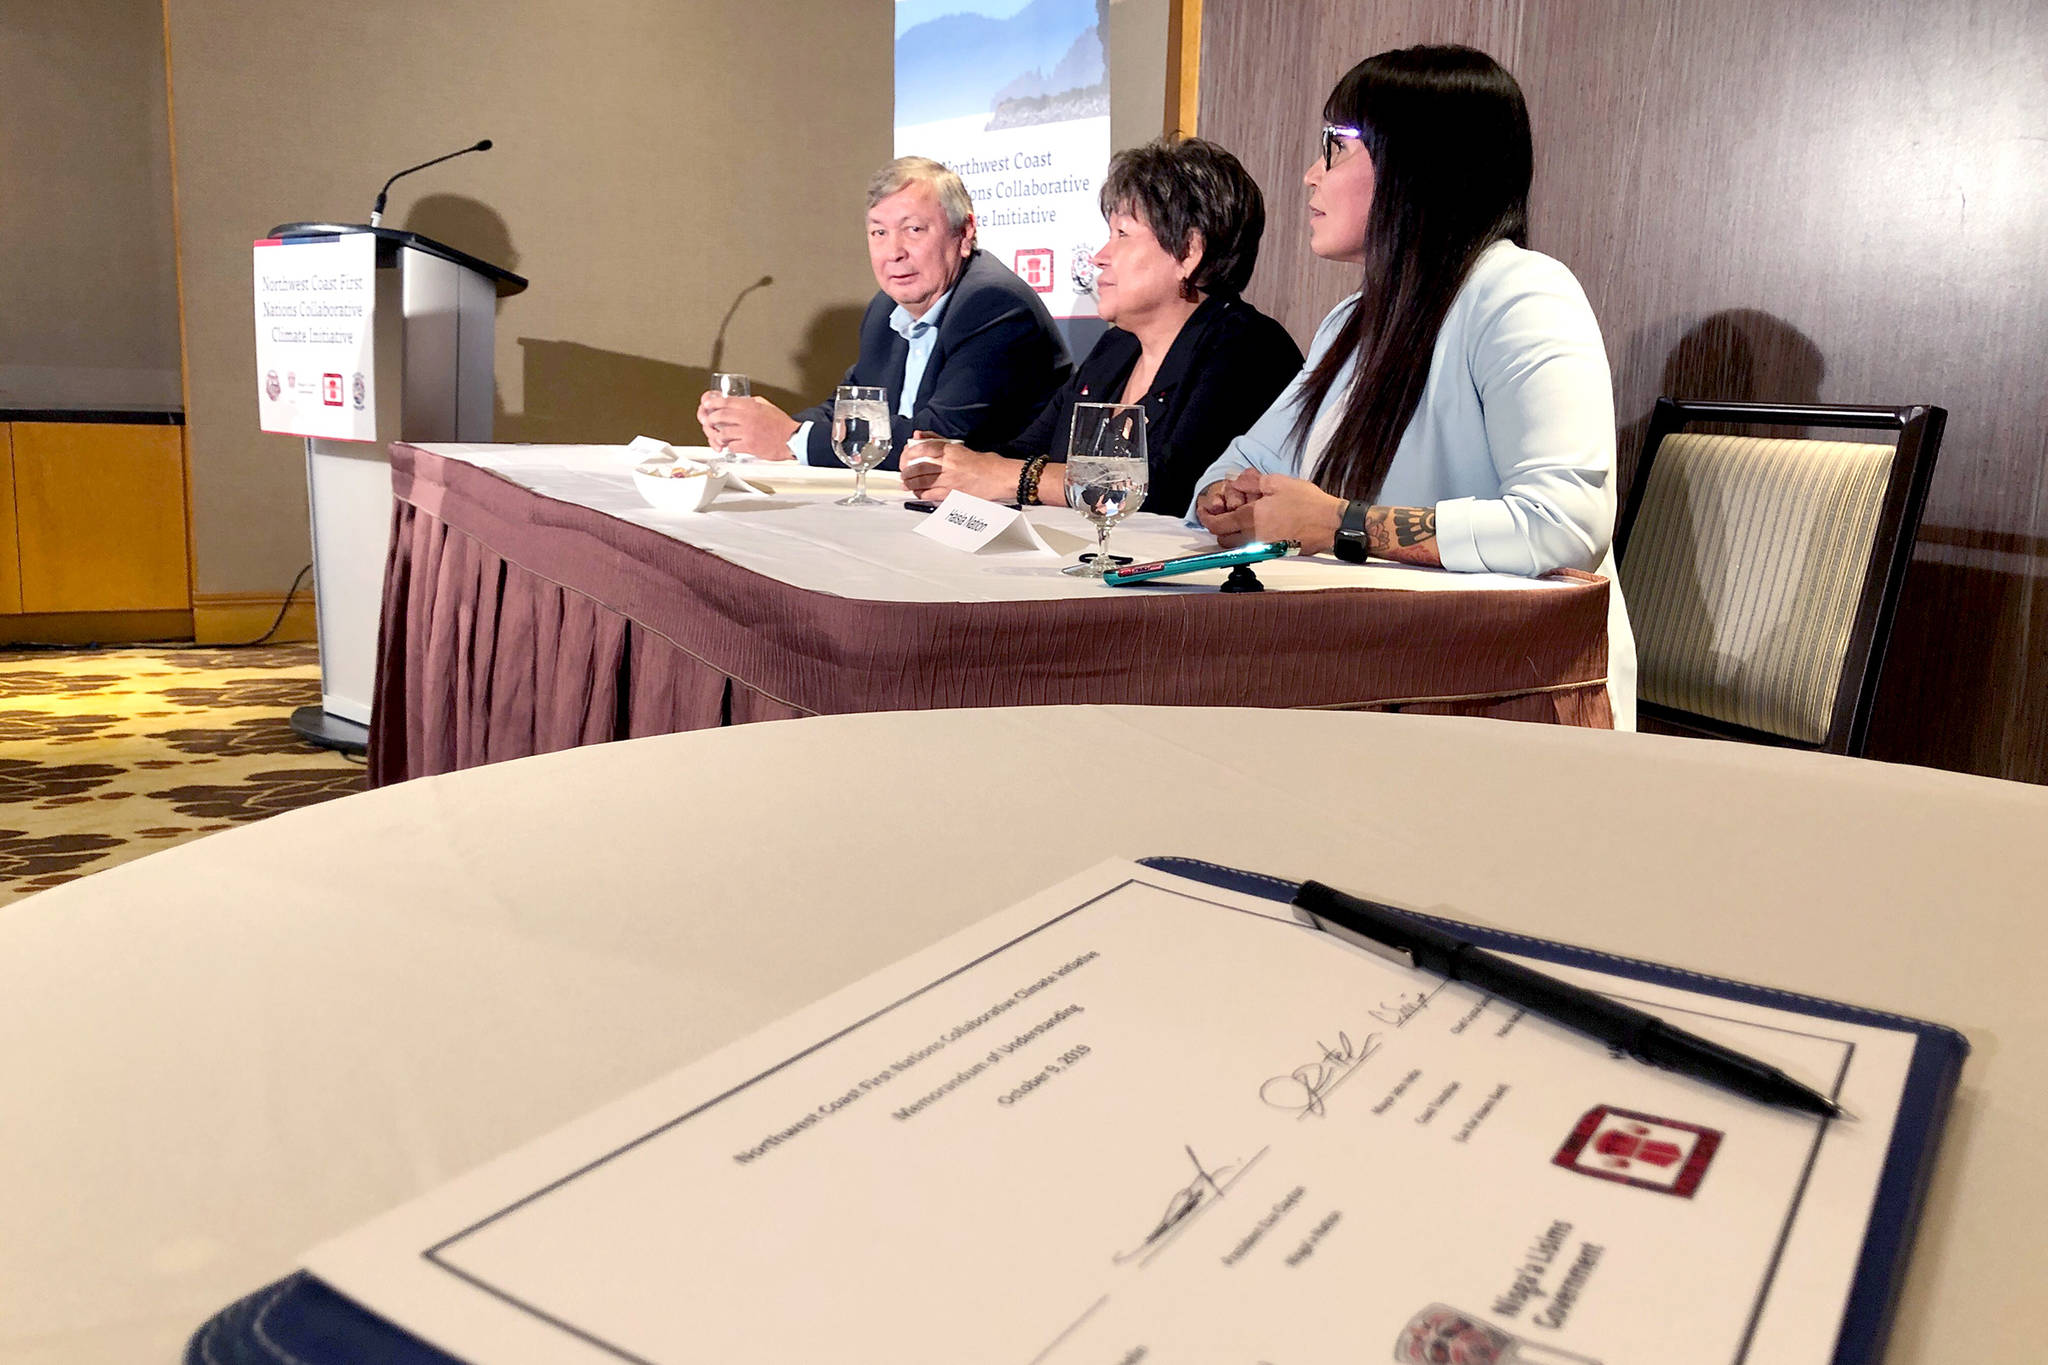 Metlakatla, Lax Kw'alaams, Nisga'a and Haisla commit to fight climate change internationally as the four nations sign an MOU while attending the World Indigenous Business Forum in Vancouver. (Ashley Wadhwani/Black Press Media)